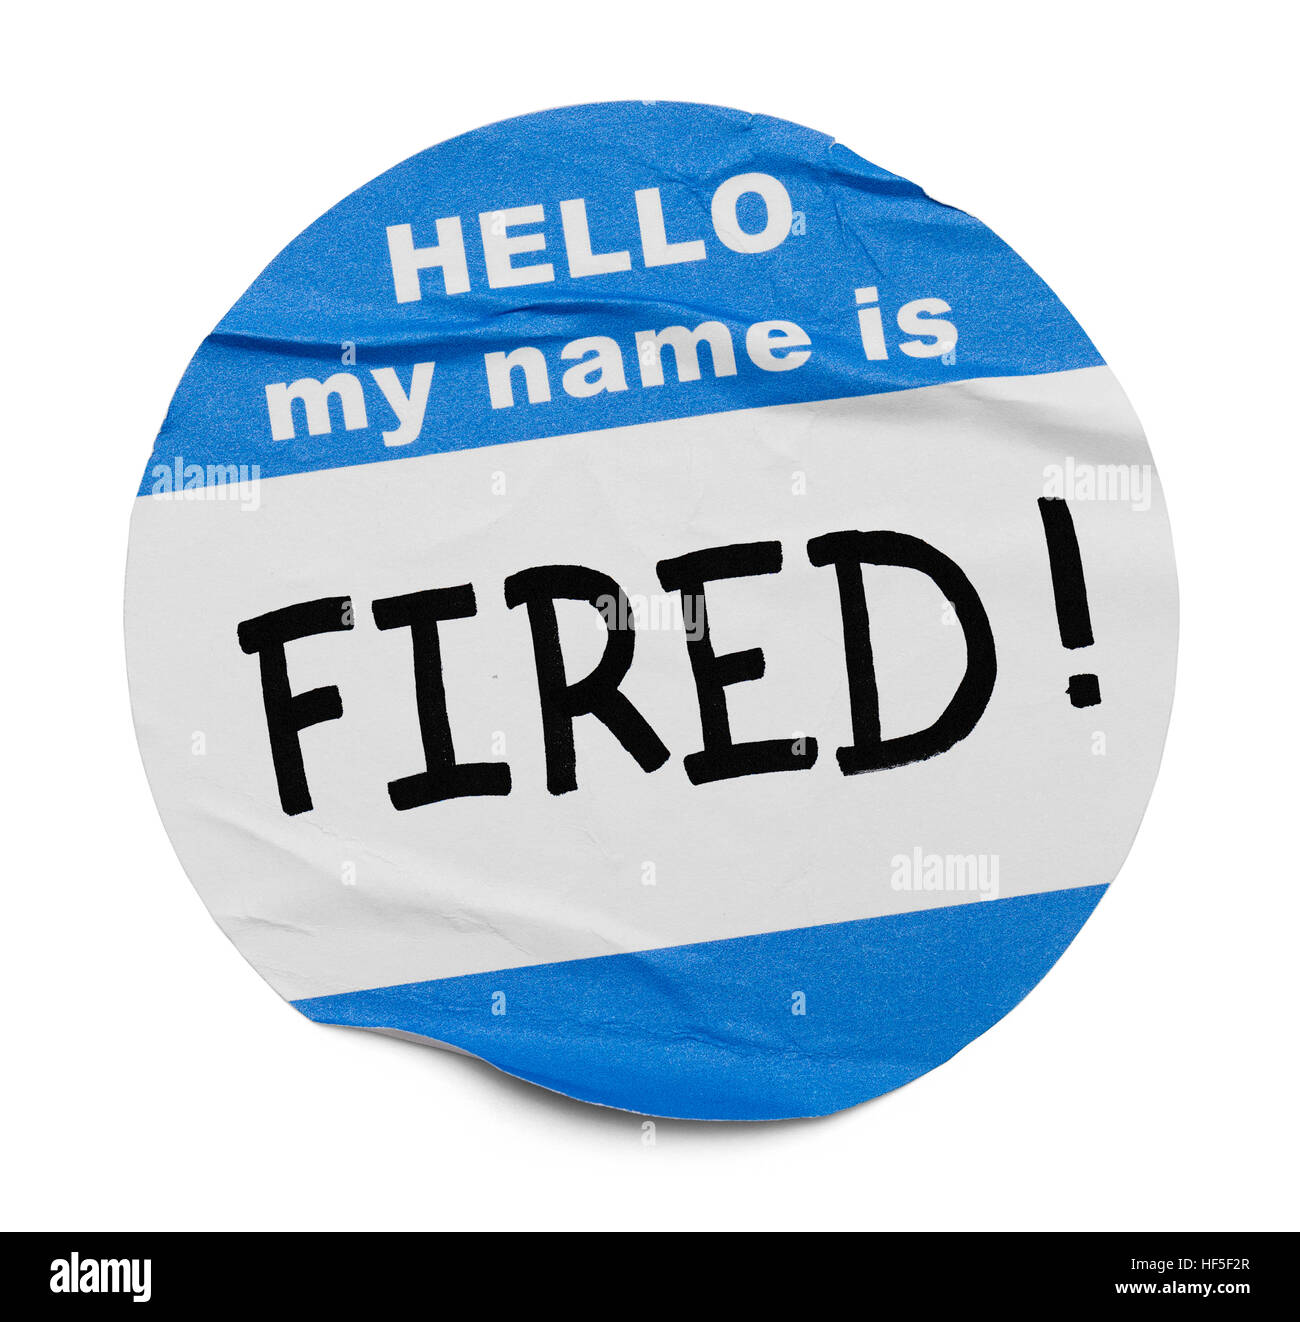 Hello My Name Is Fired Tag Isolated on White Background. - Stock Image